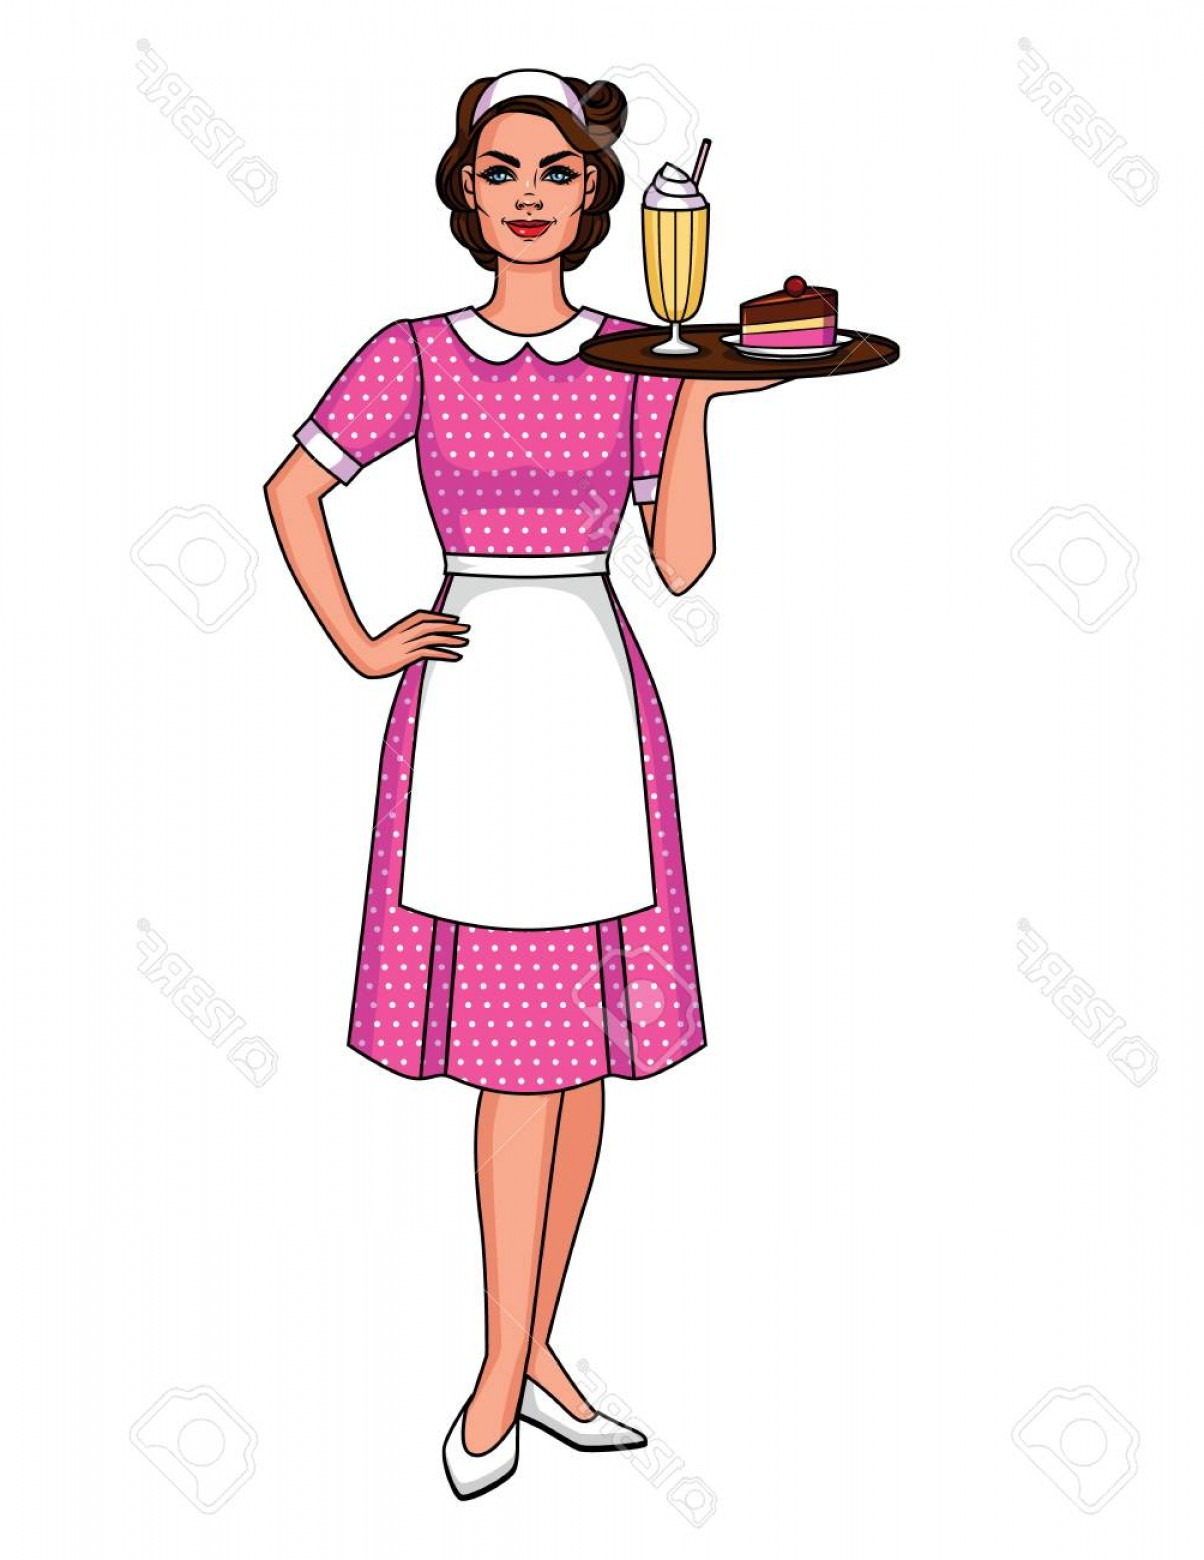 Food Vectors 50 S: Photostock Vector Vector Cartoon Illustration Of A Pretty Cute Waitress With A Tray Food Cute Character From S Of S